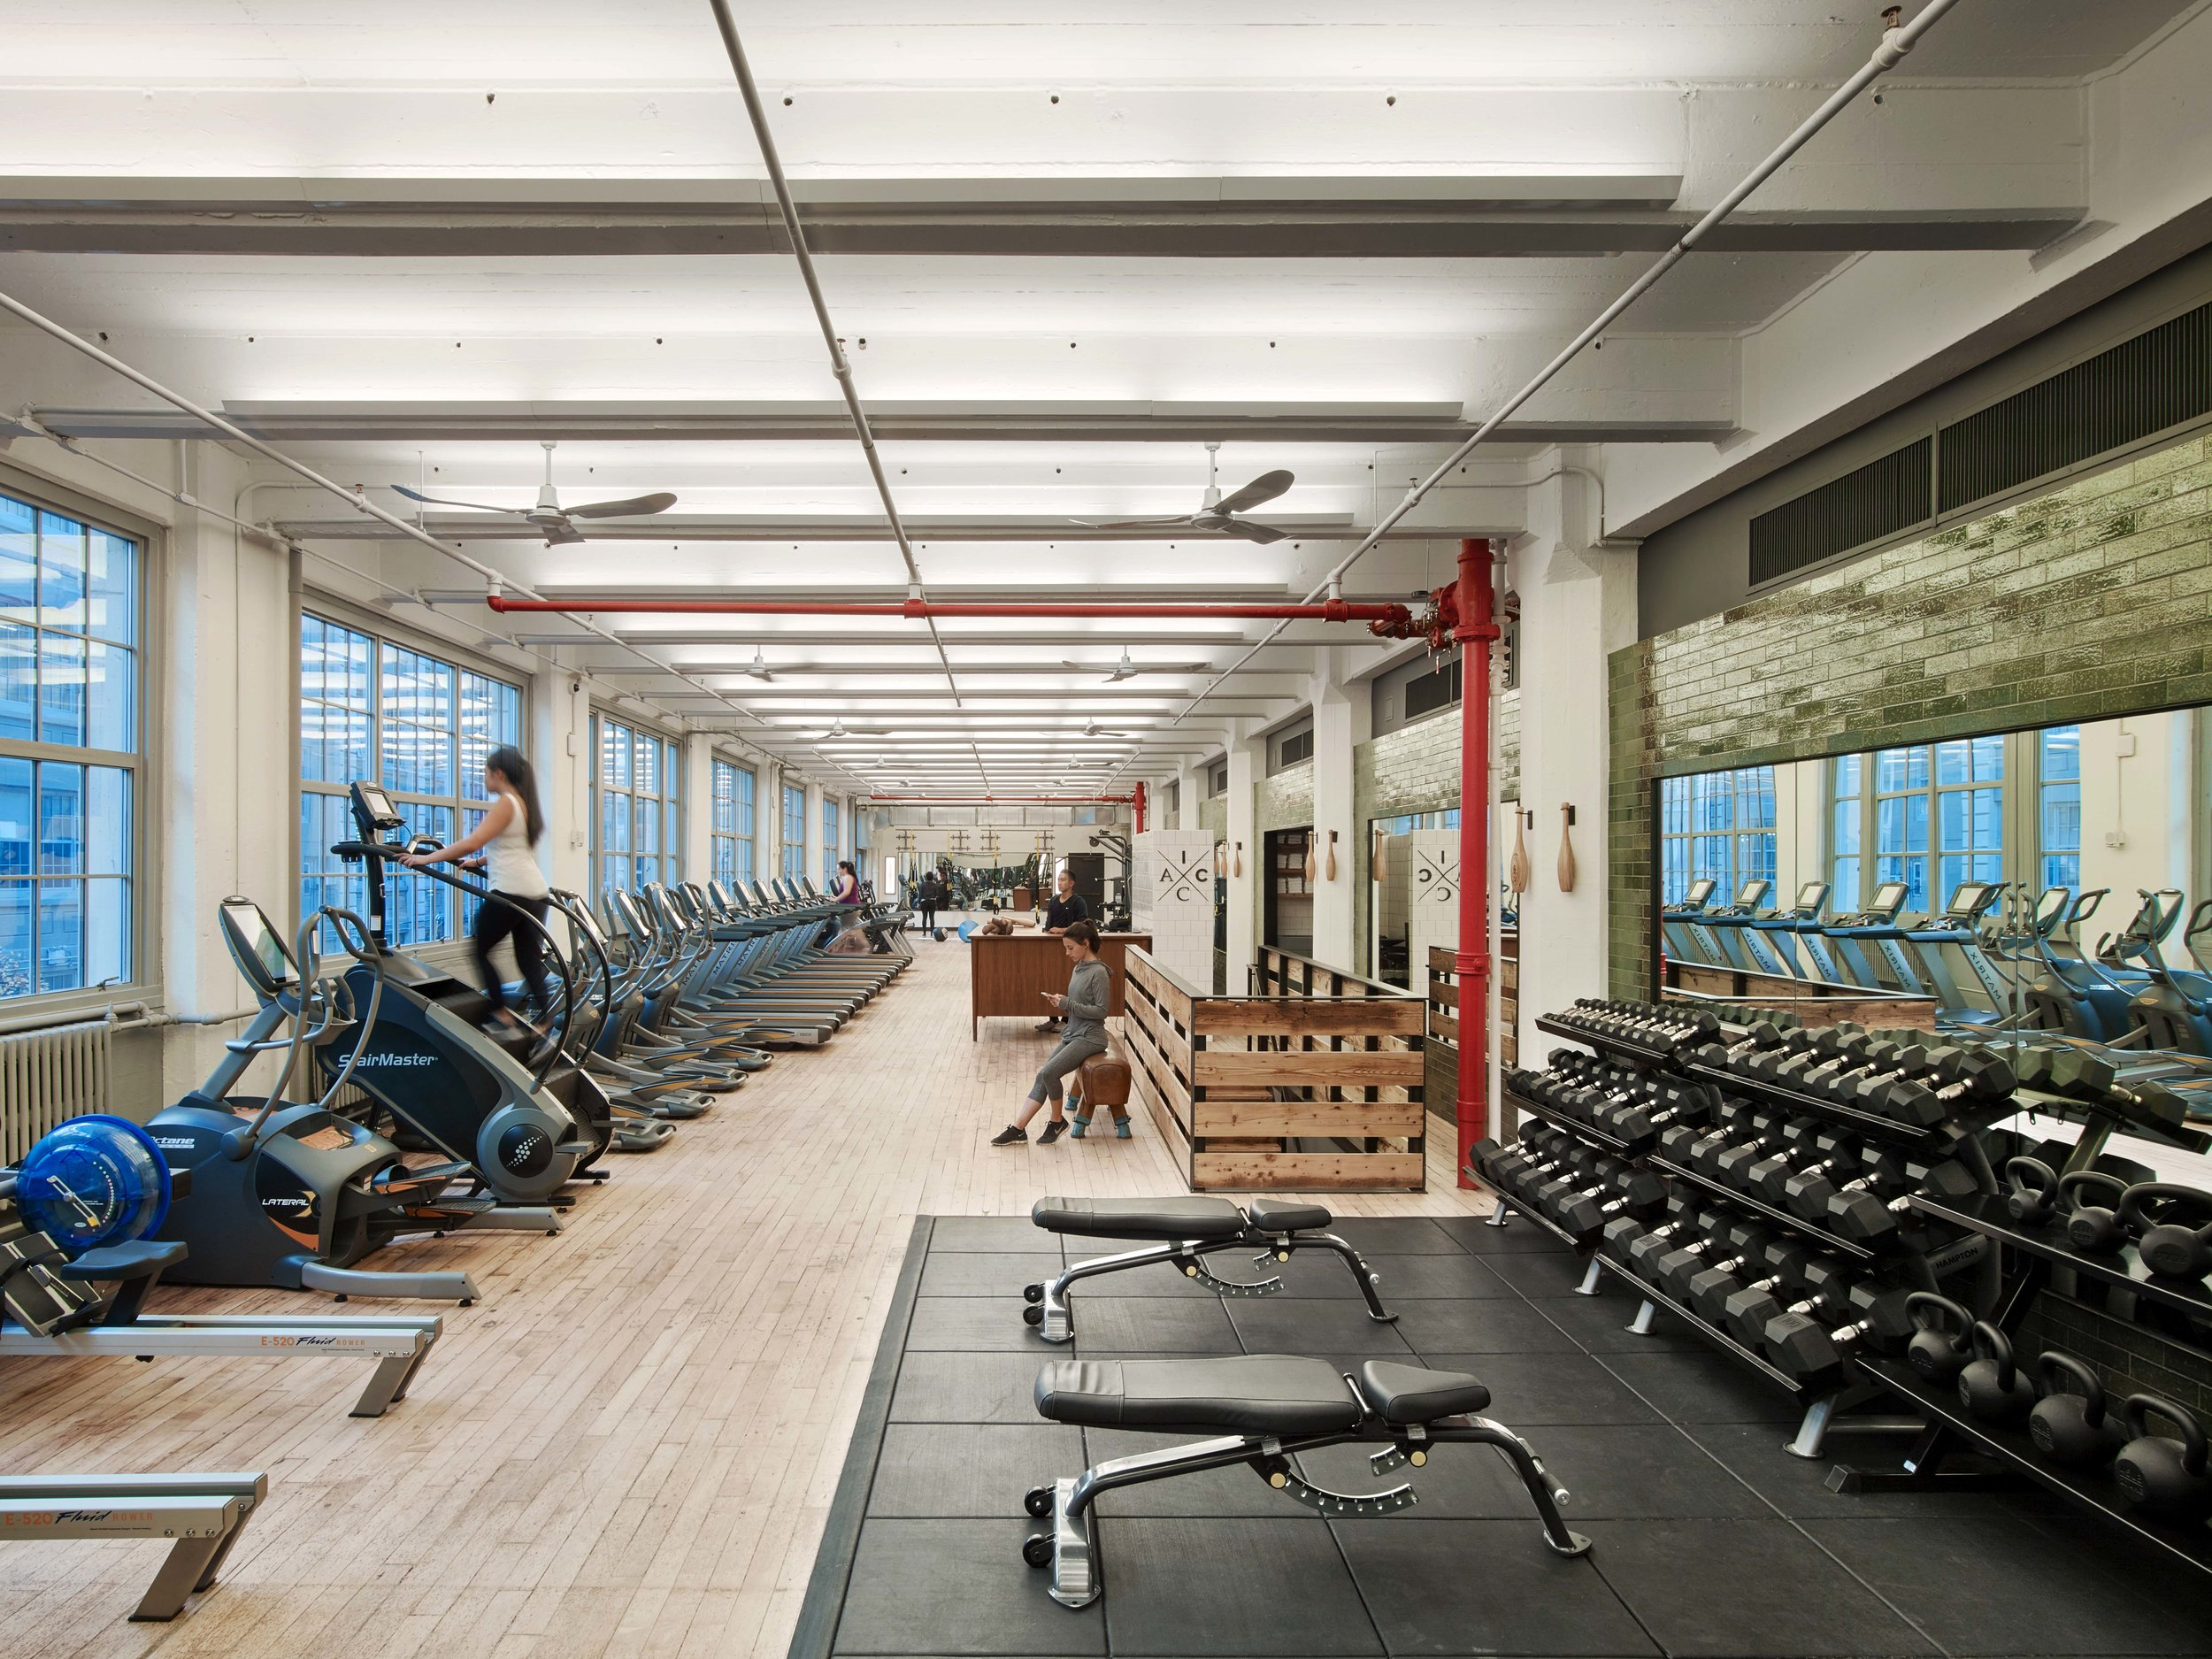 Industry City Athletic Club Overall Gym with People